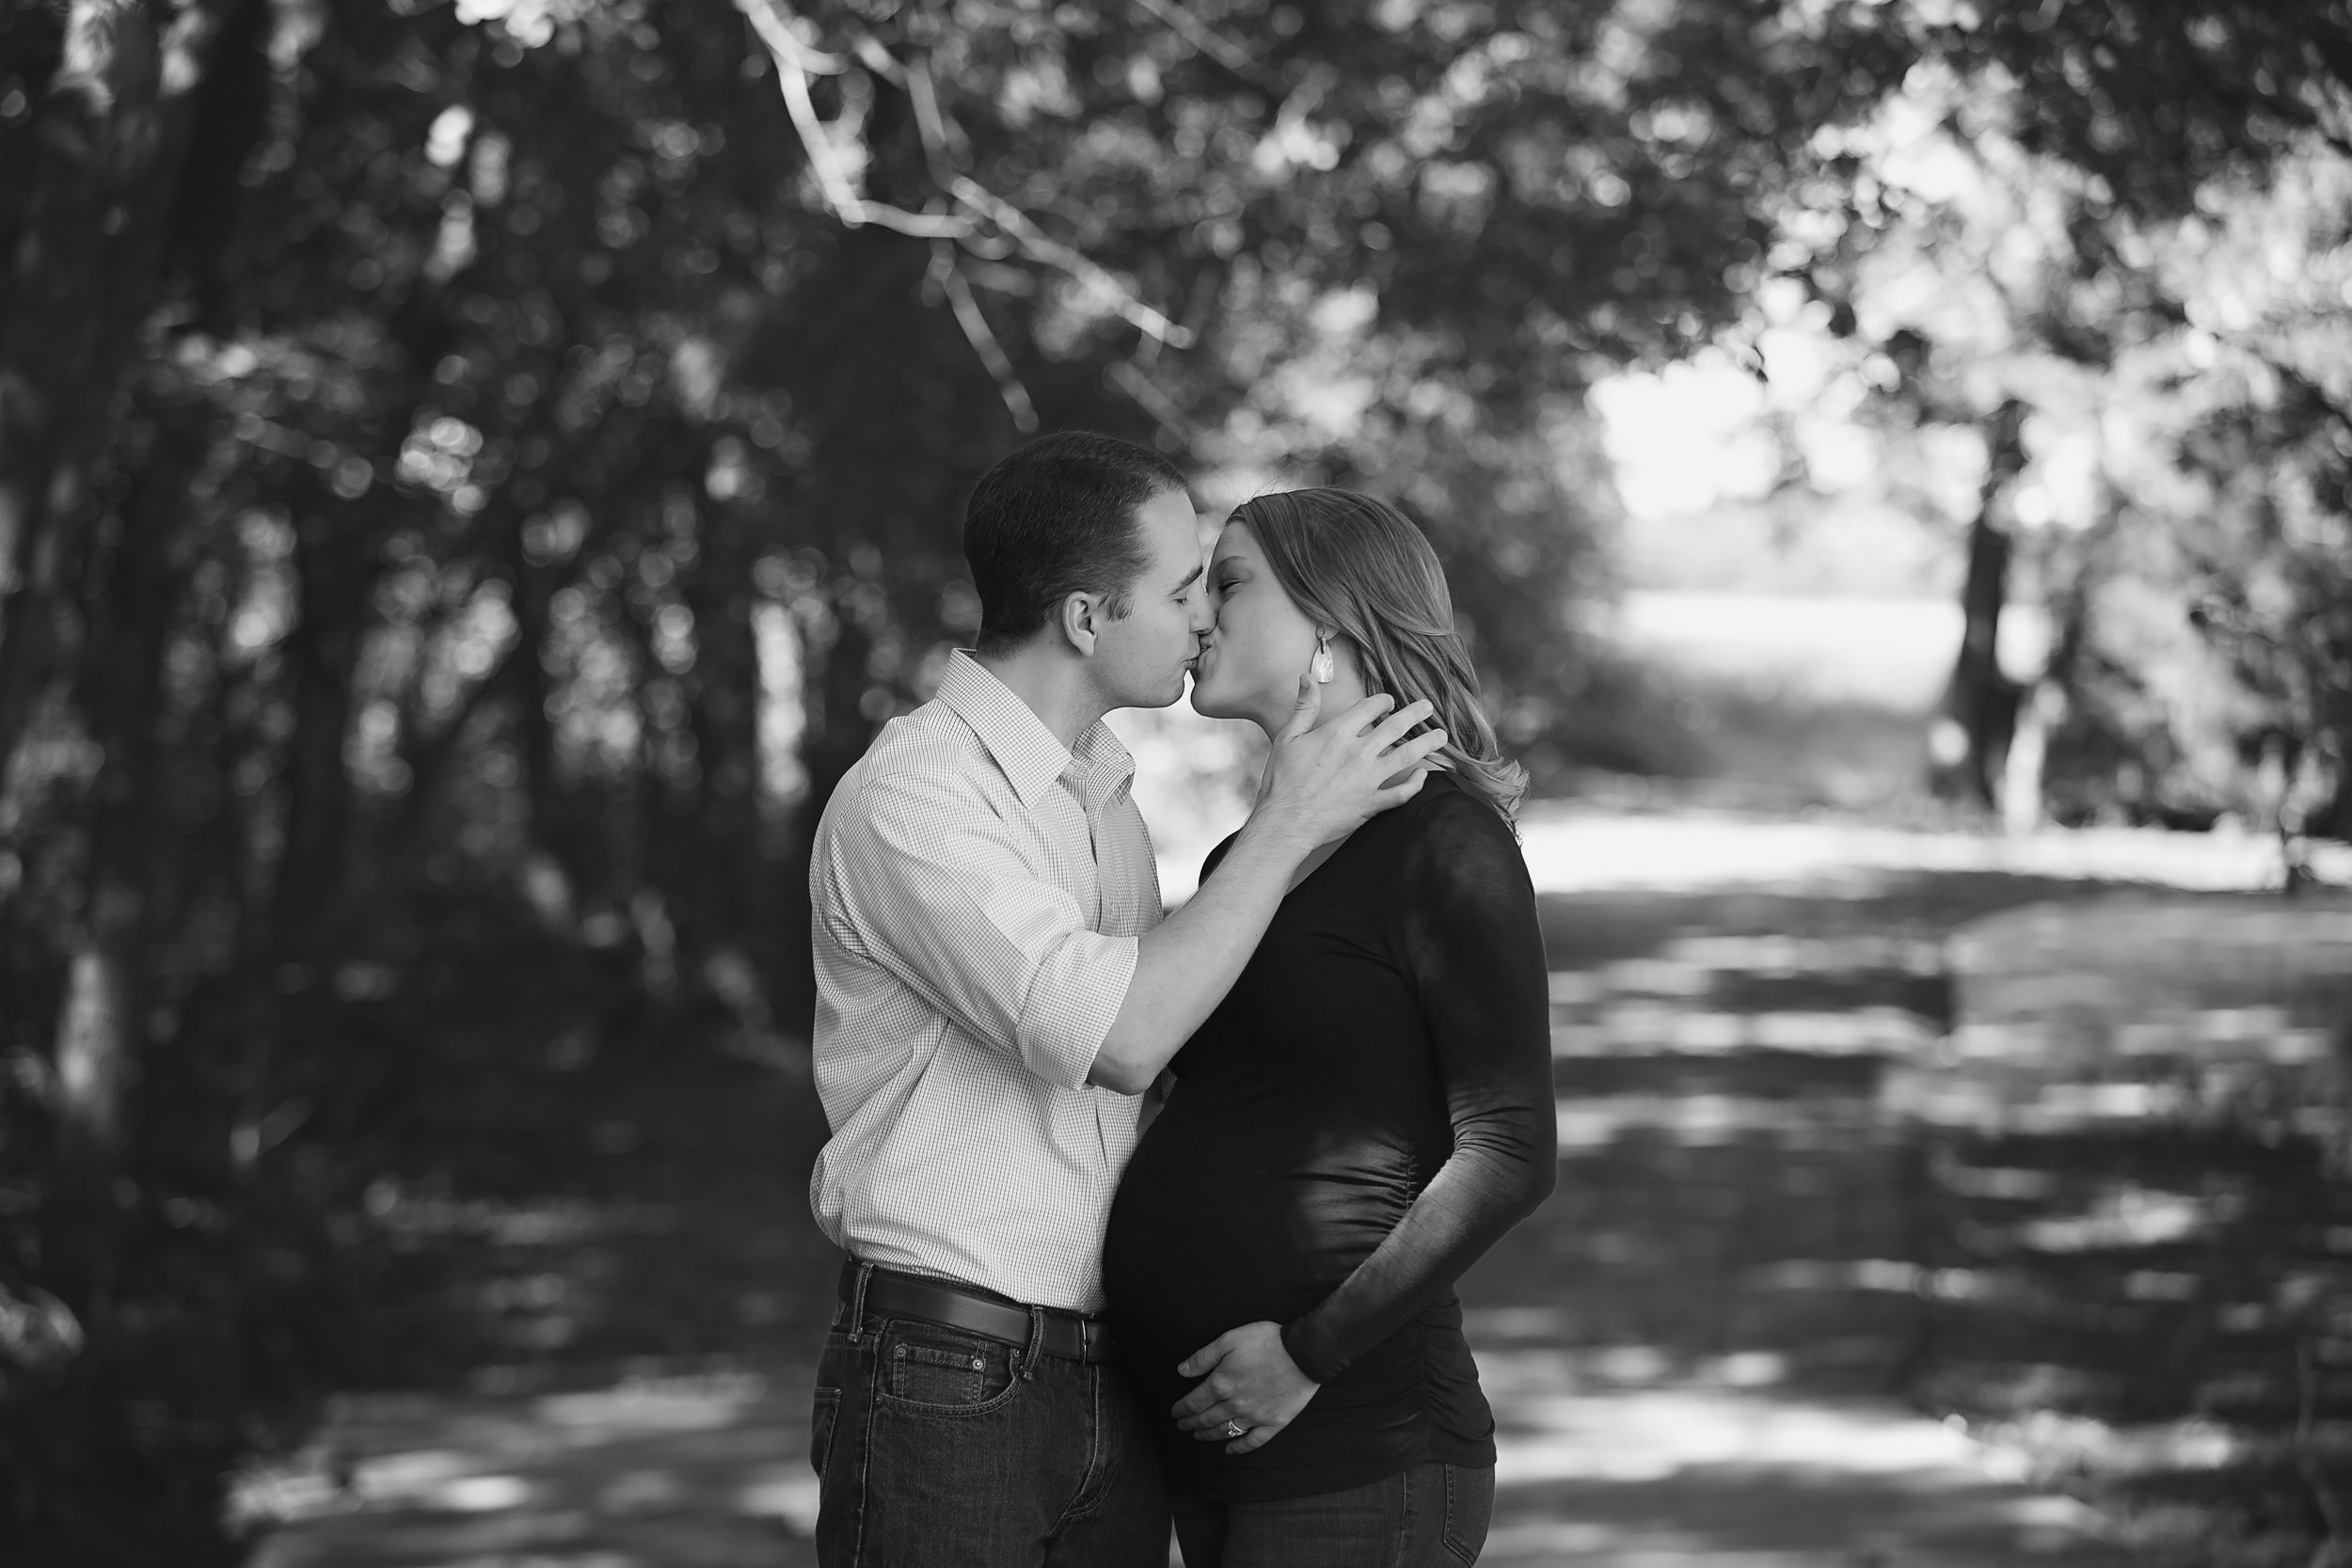 18_10_21 Michelle Baudoin Maternity Session - Parker Rose Garden22.jpg